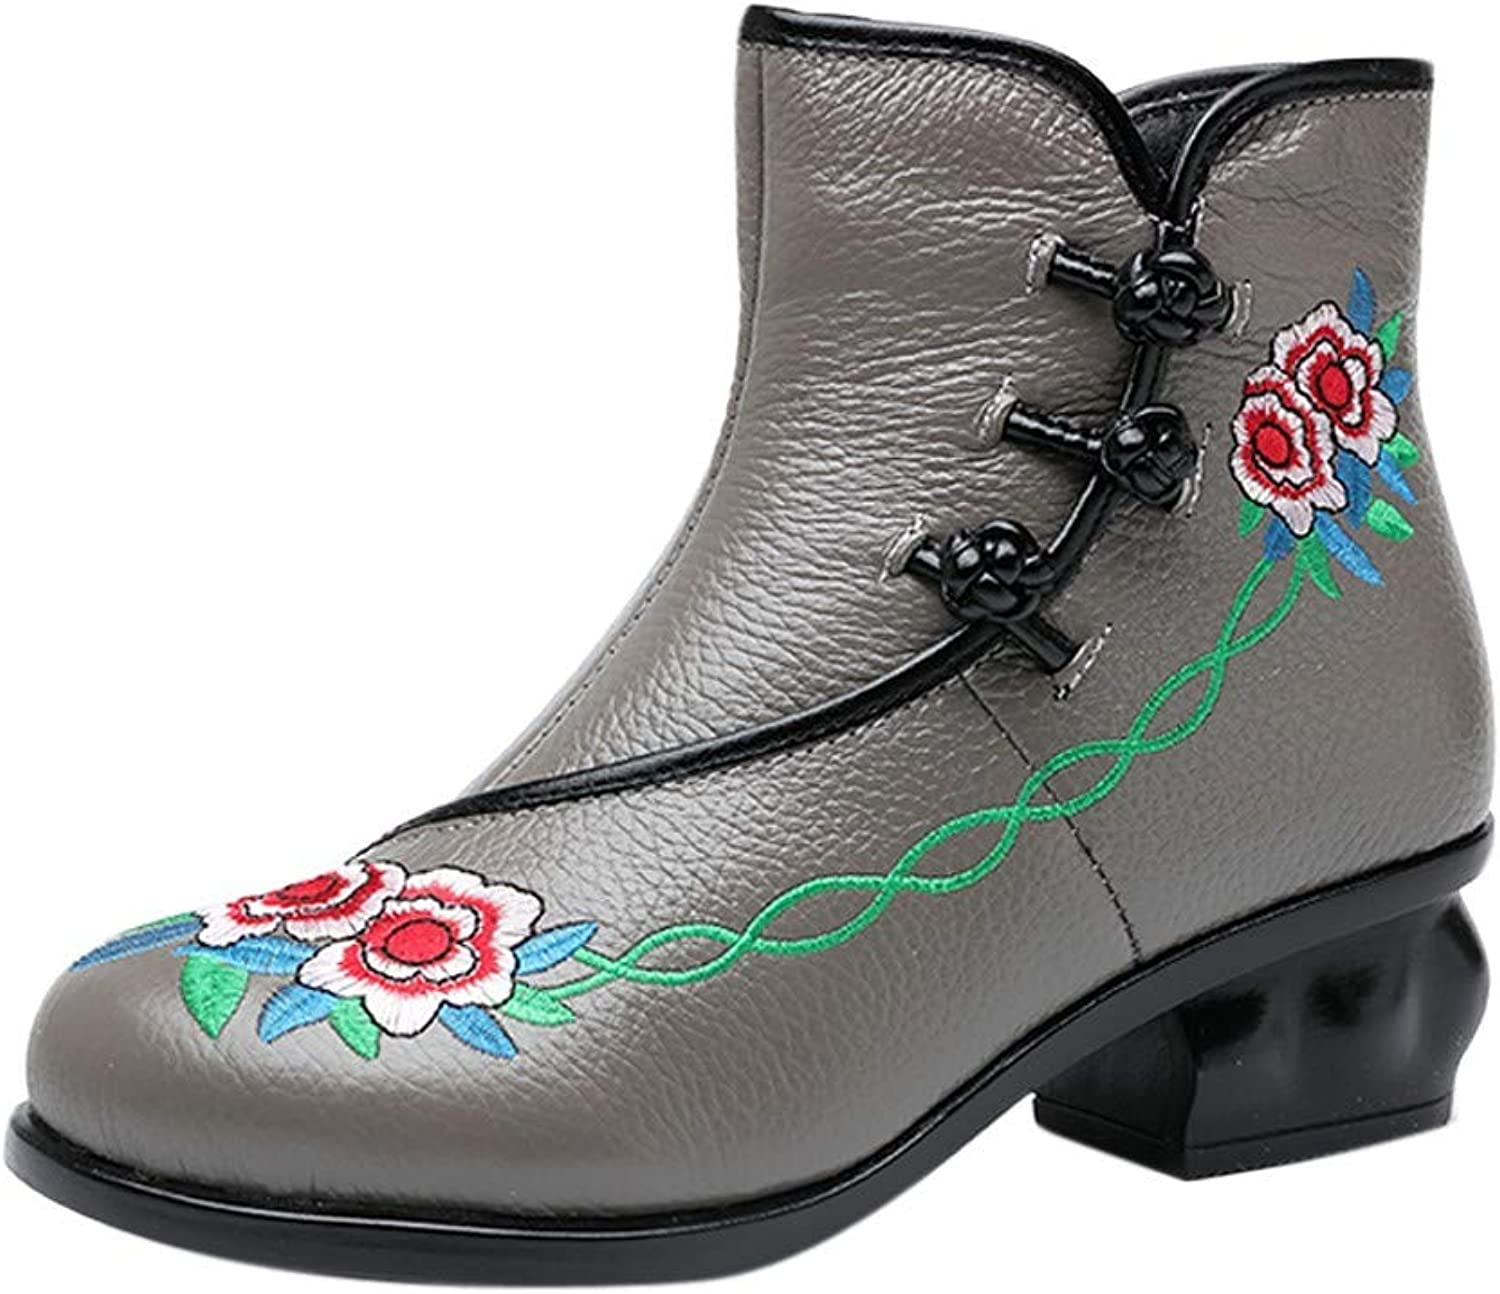 Colmkley Women's Vintage Bohemia Ankle Boots Embroidery Medium High Heeled shoes